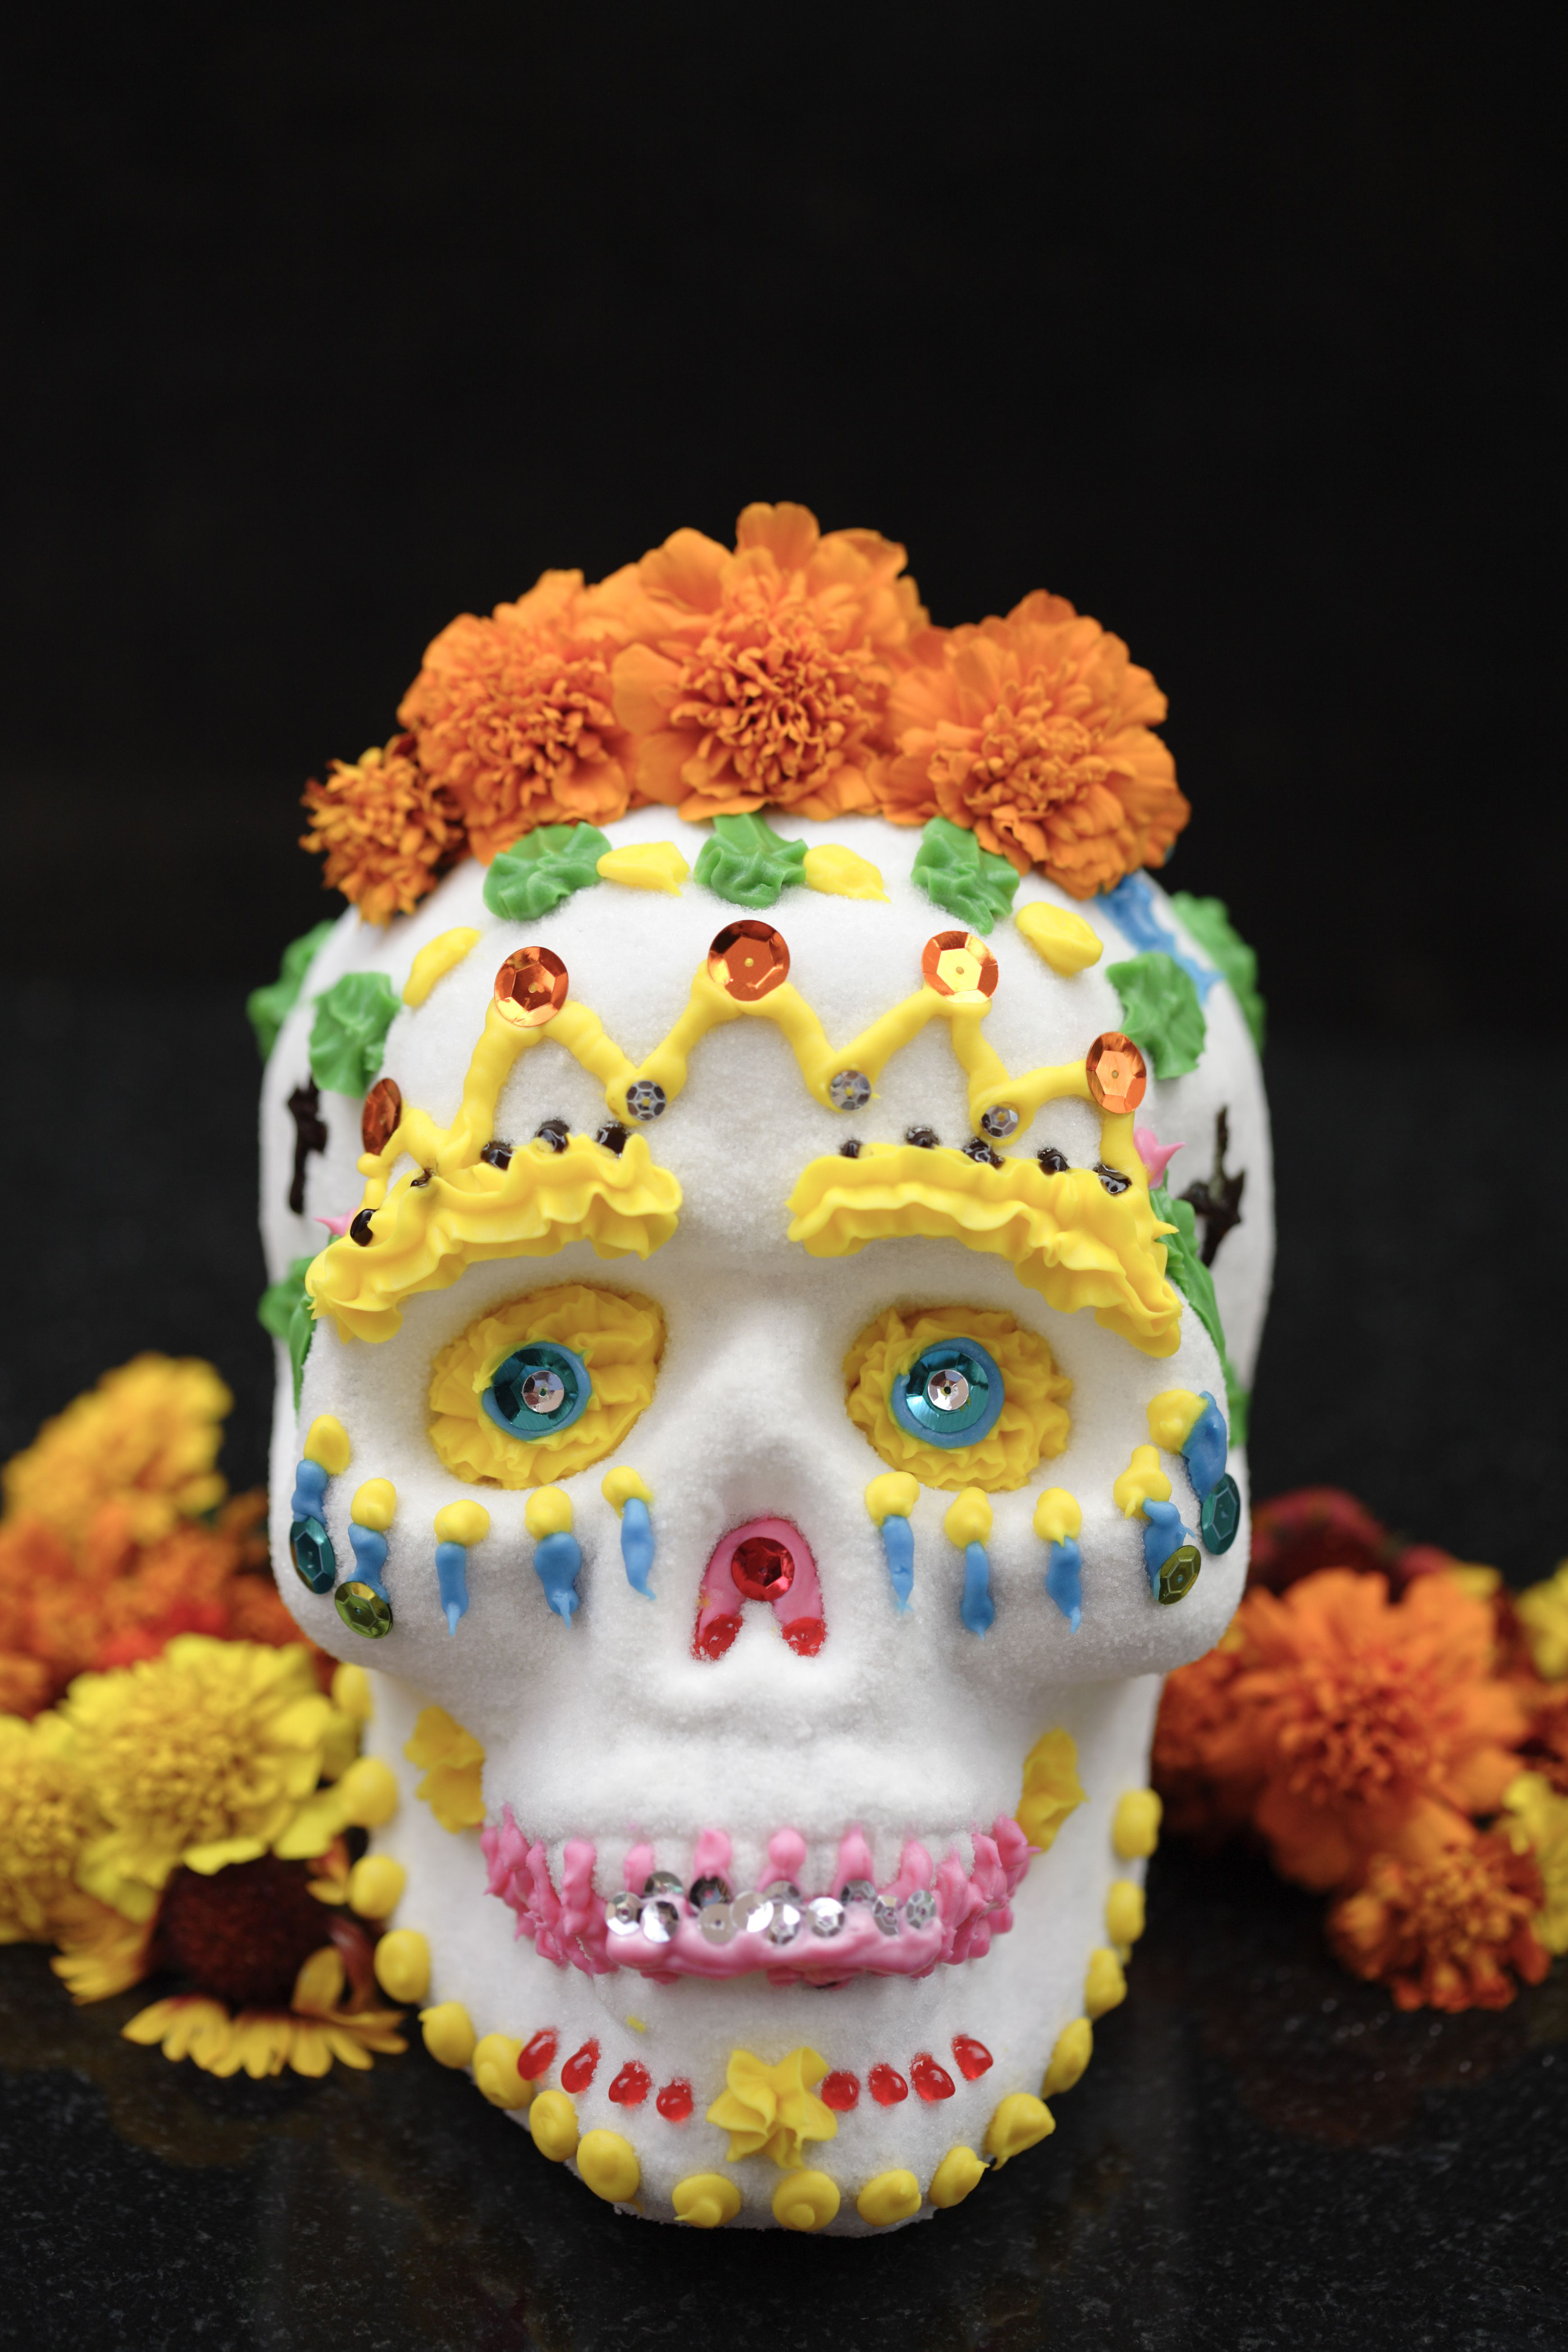 Royal Icing Icing To Decorate Your Sugar Skulls